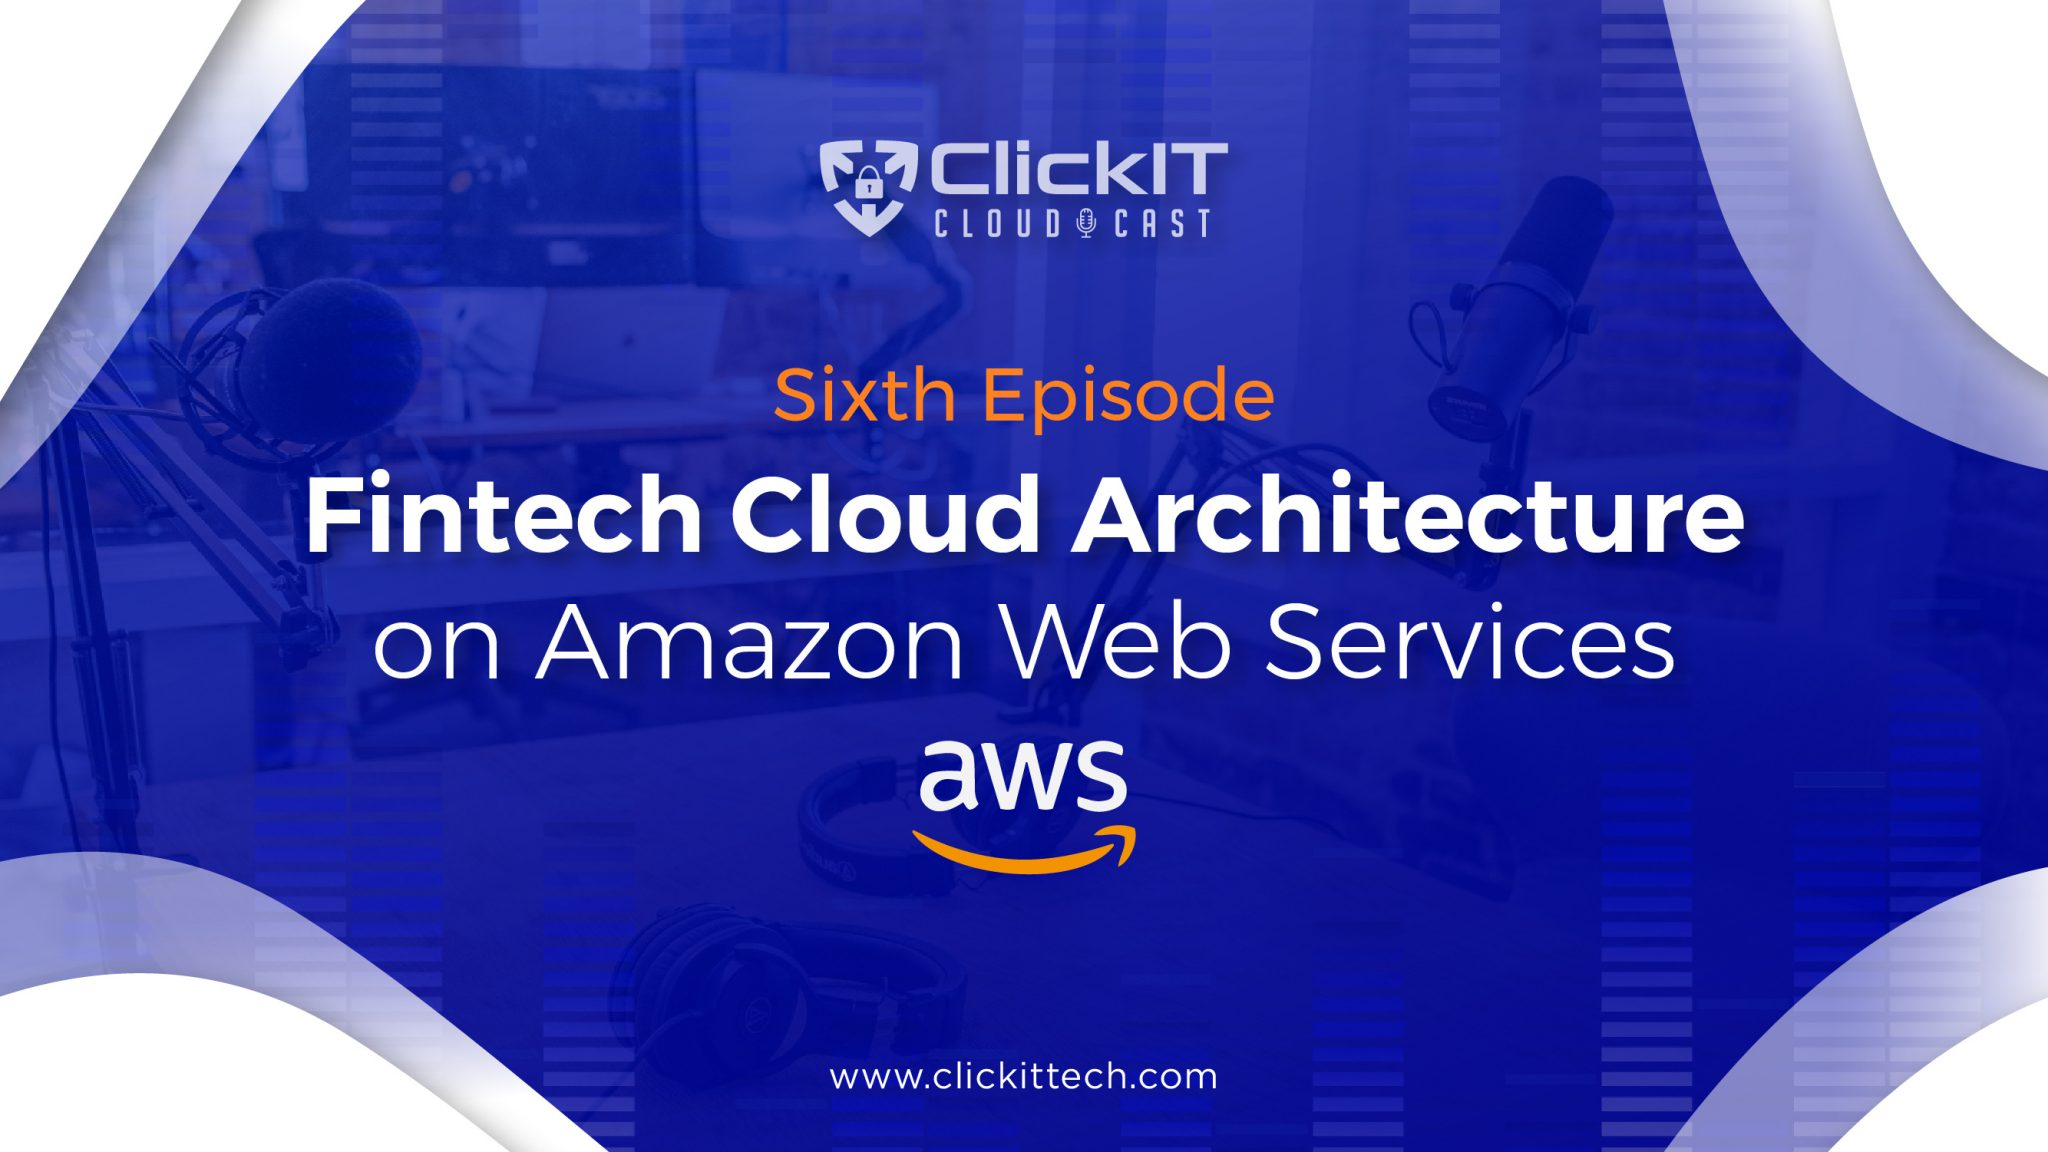 Fintech Cloud Architecture on AWS